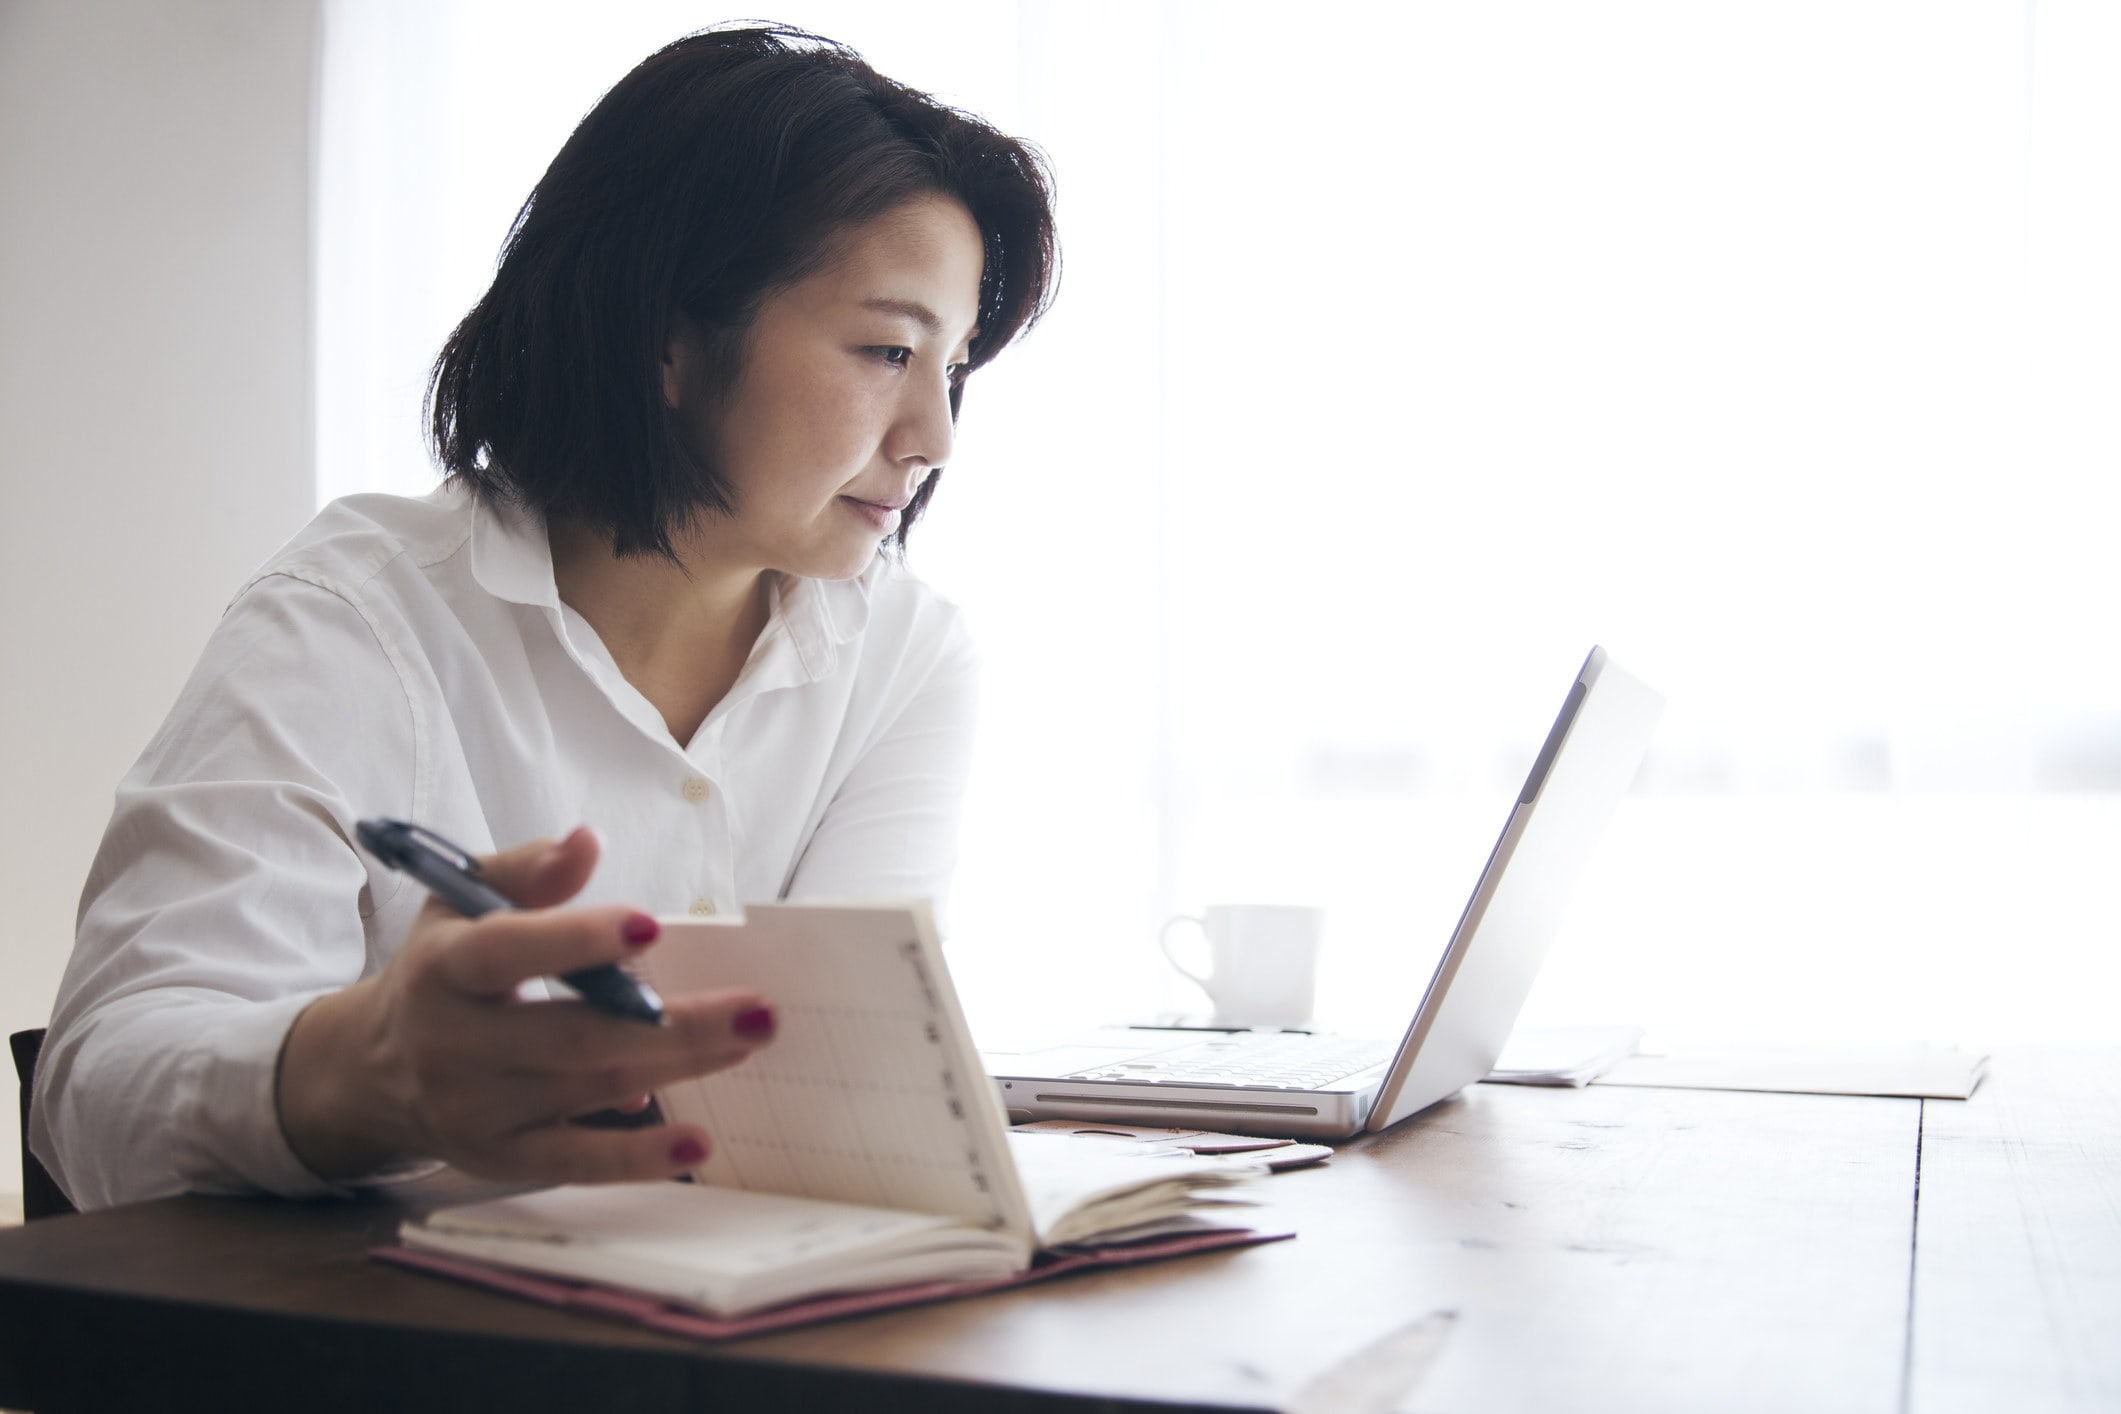 A woman writing notes while studying